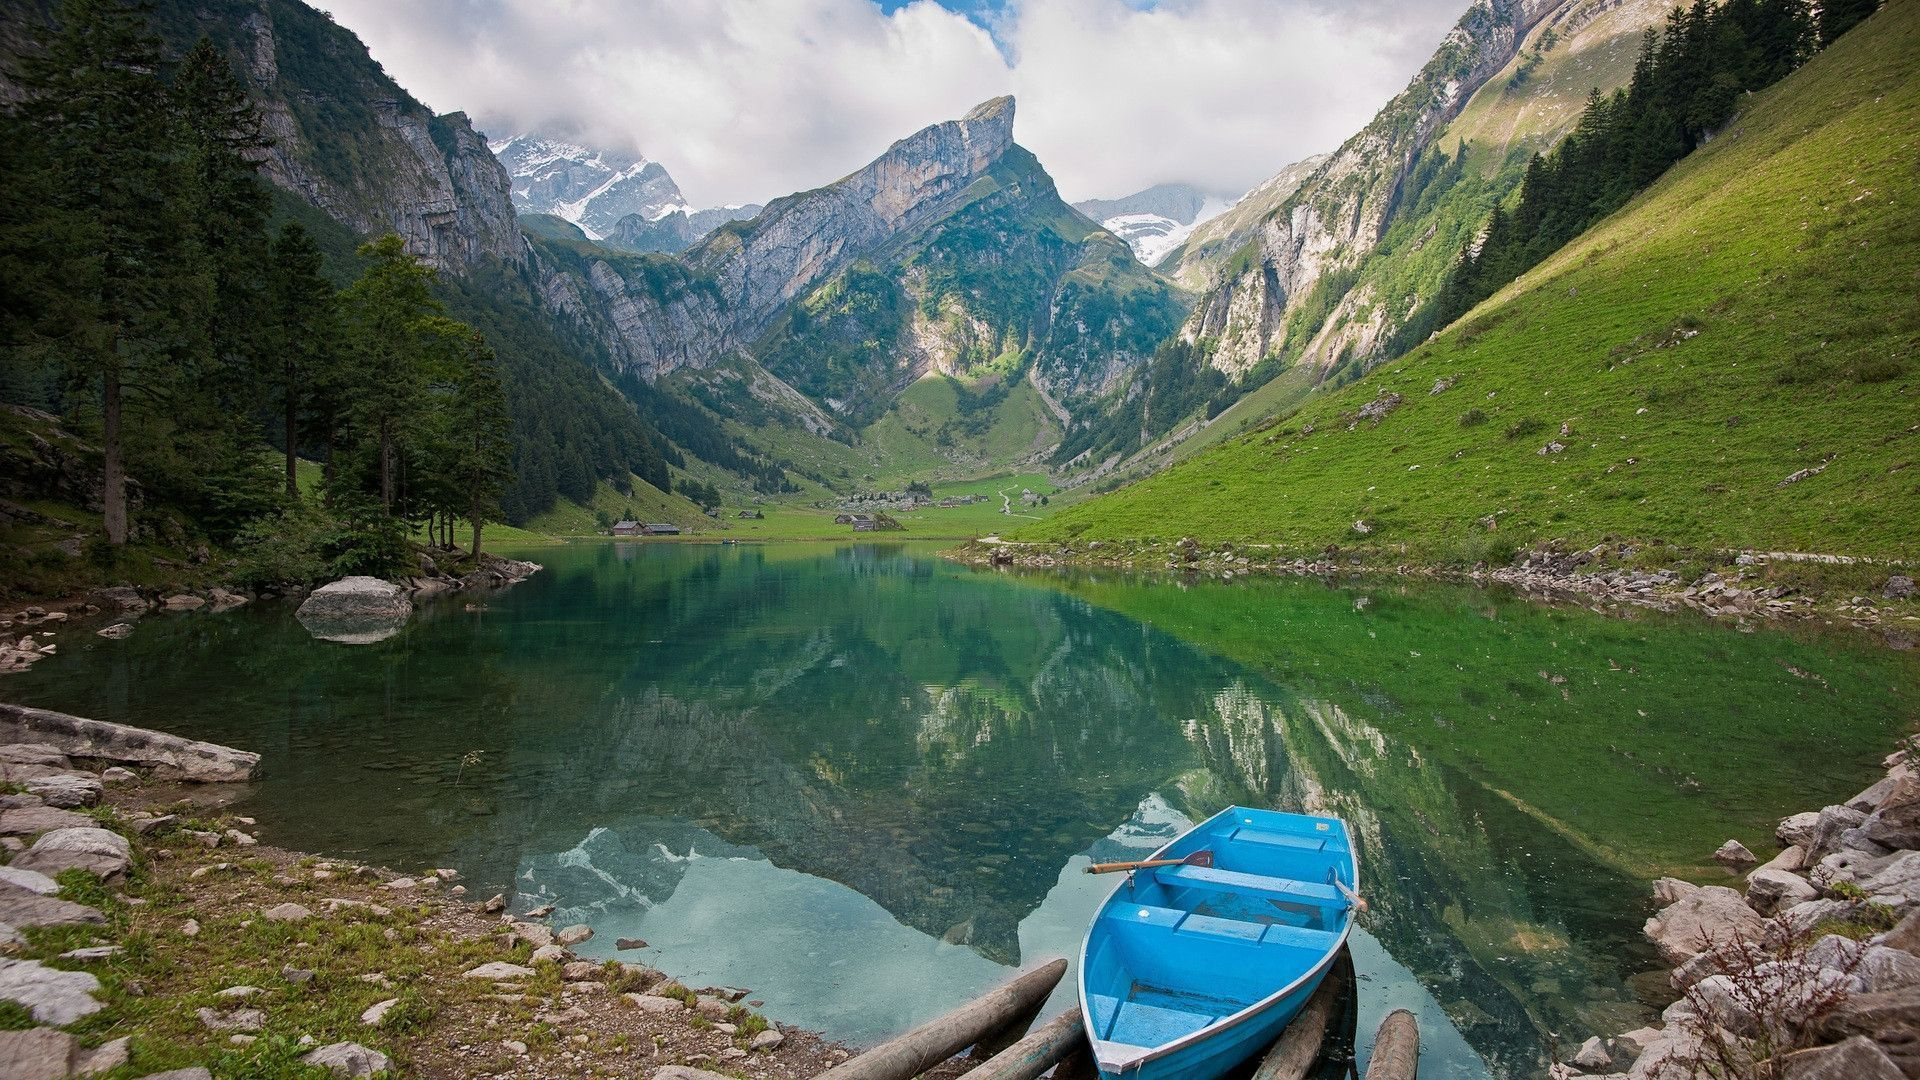 SWITZERLAND Seealpsee lake in the Alpstein range of the canton of